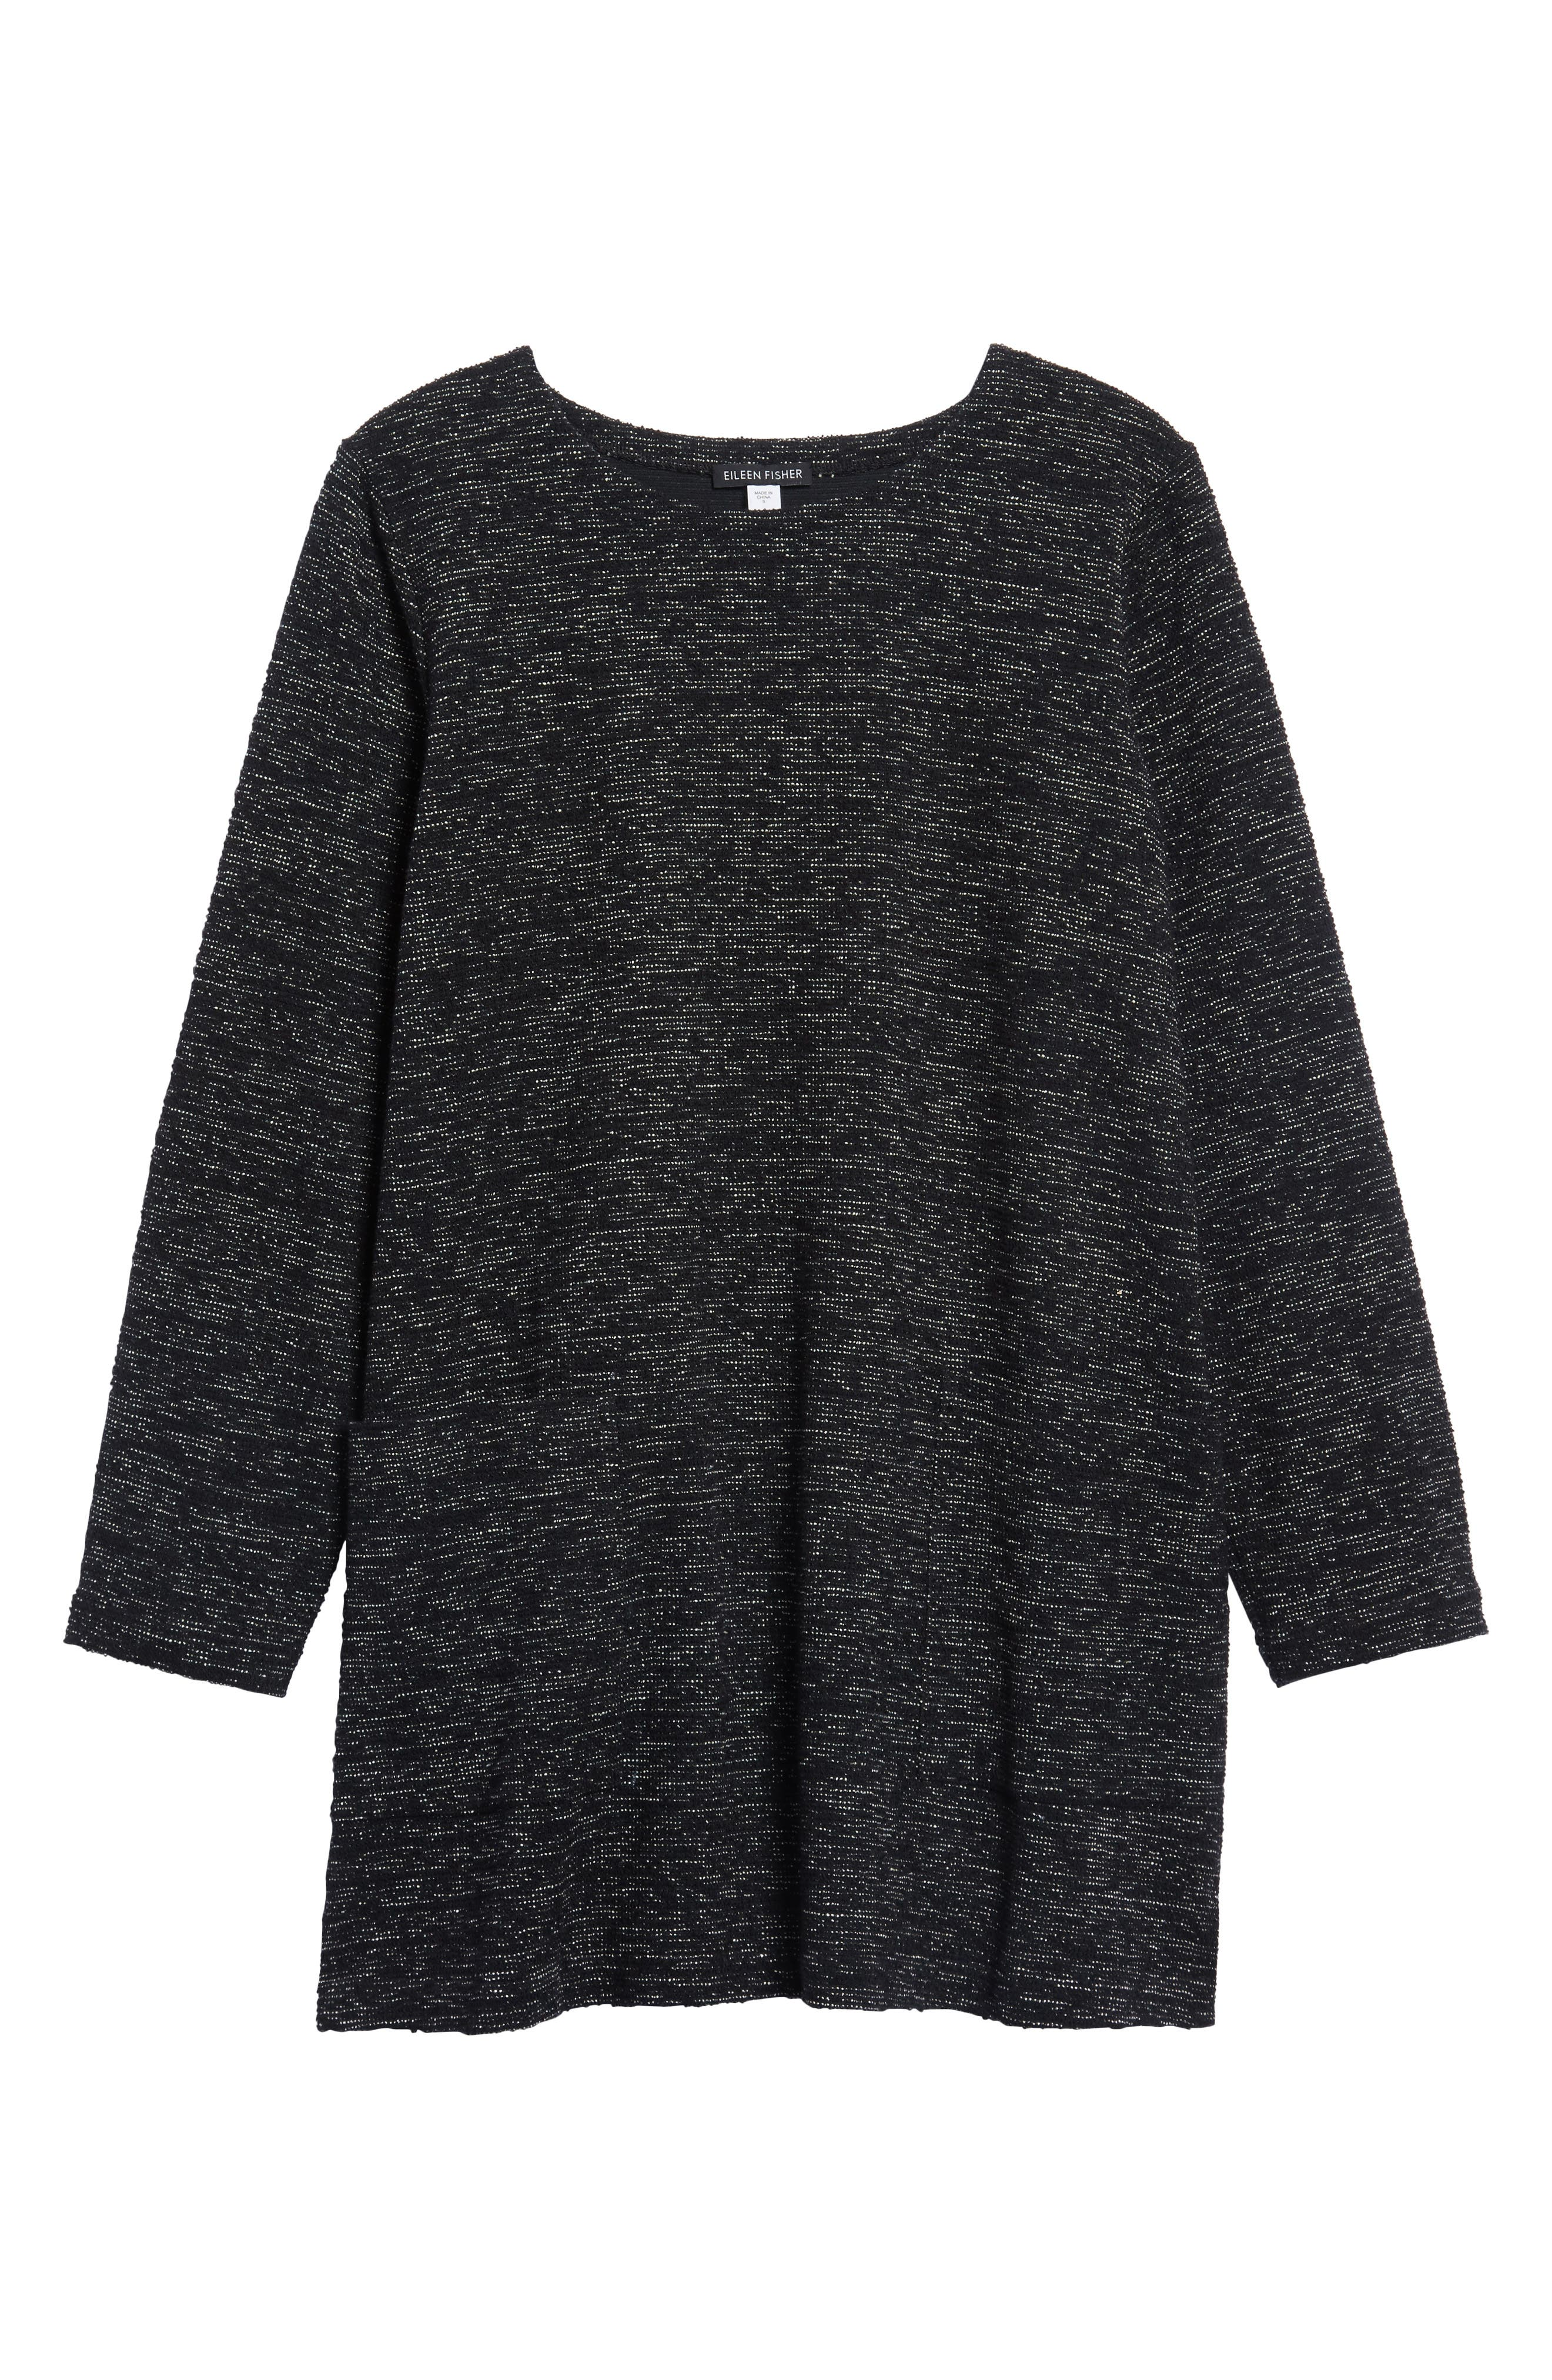 Boxy Organic Cotton Blend Tunic Sweater,                             Alternate thumbnail 6, color,                             001